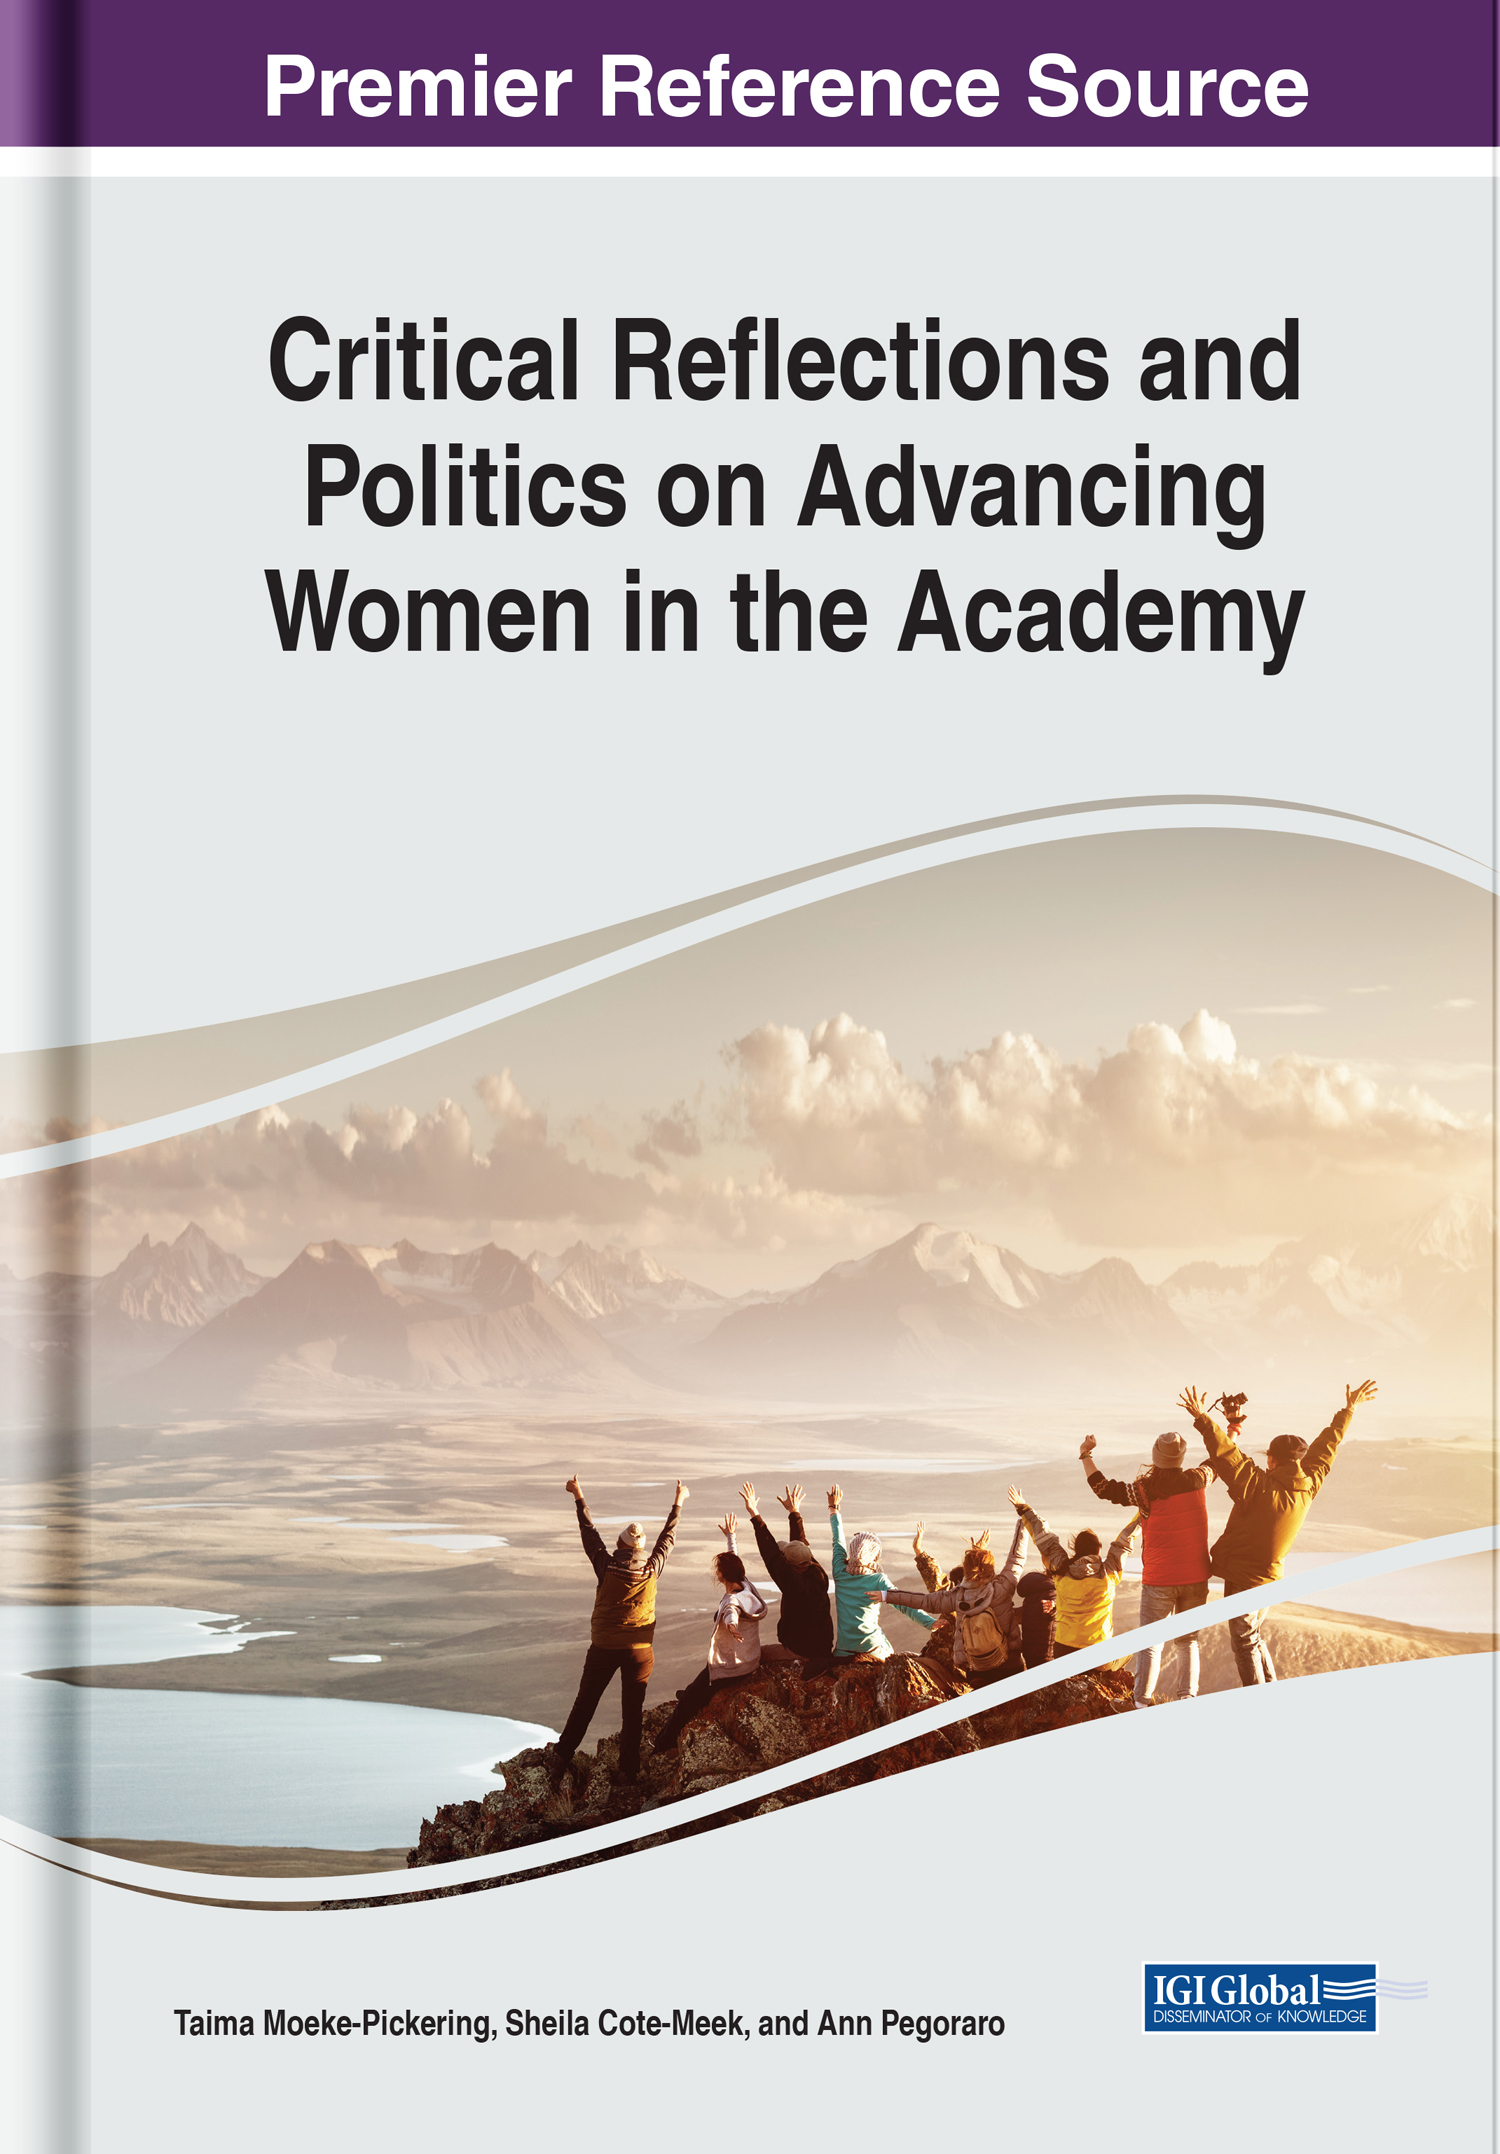 . The book, Critical Reflections and Politics on Advancing Women in the Academy